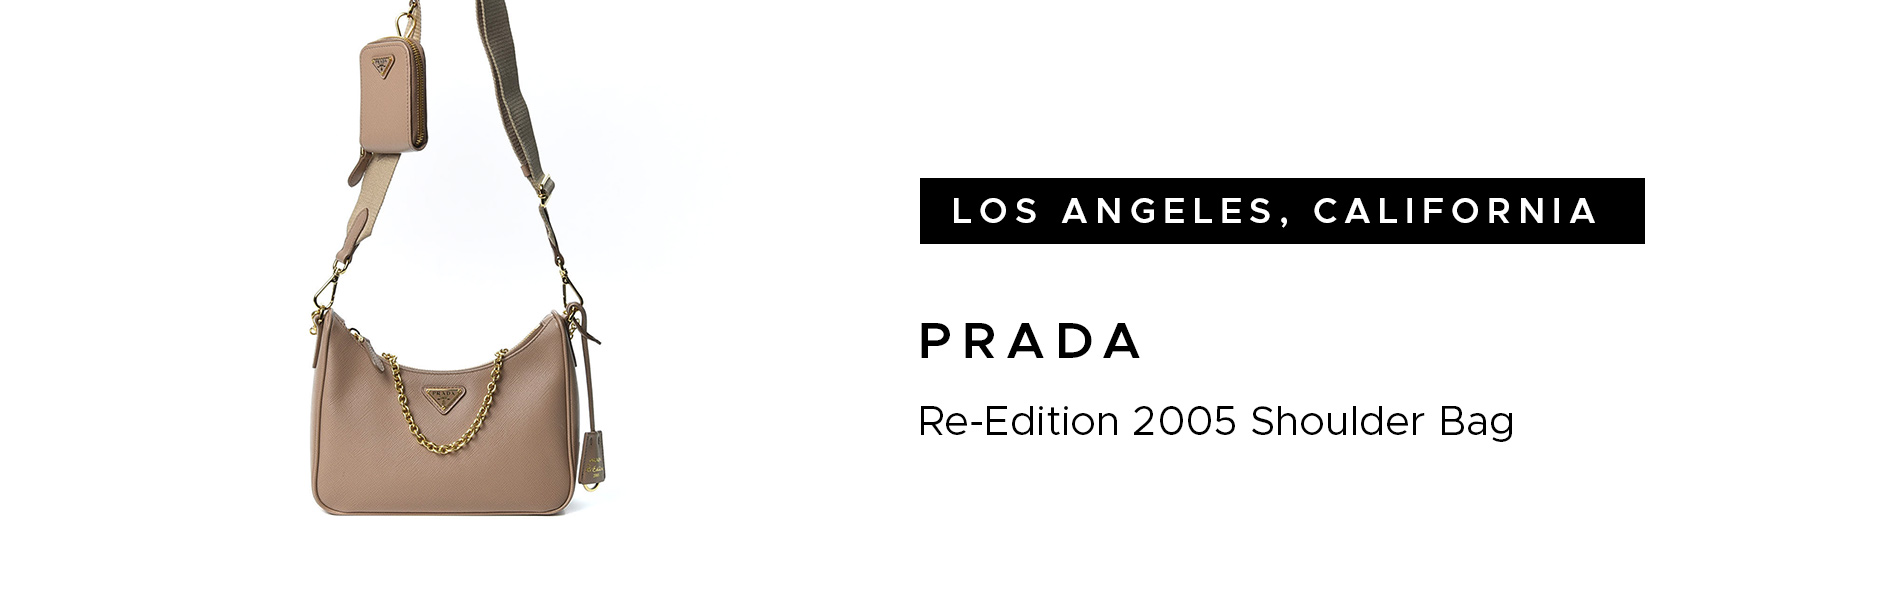 Prada Re-Edition 2005 Shoulder Bag